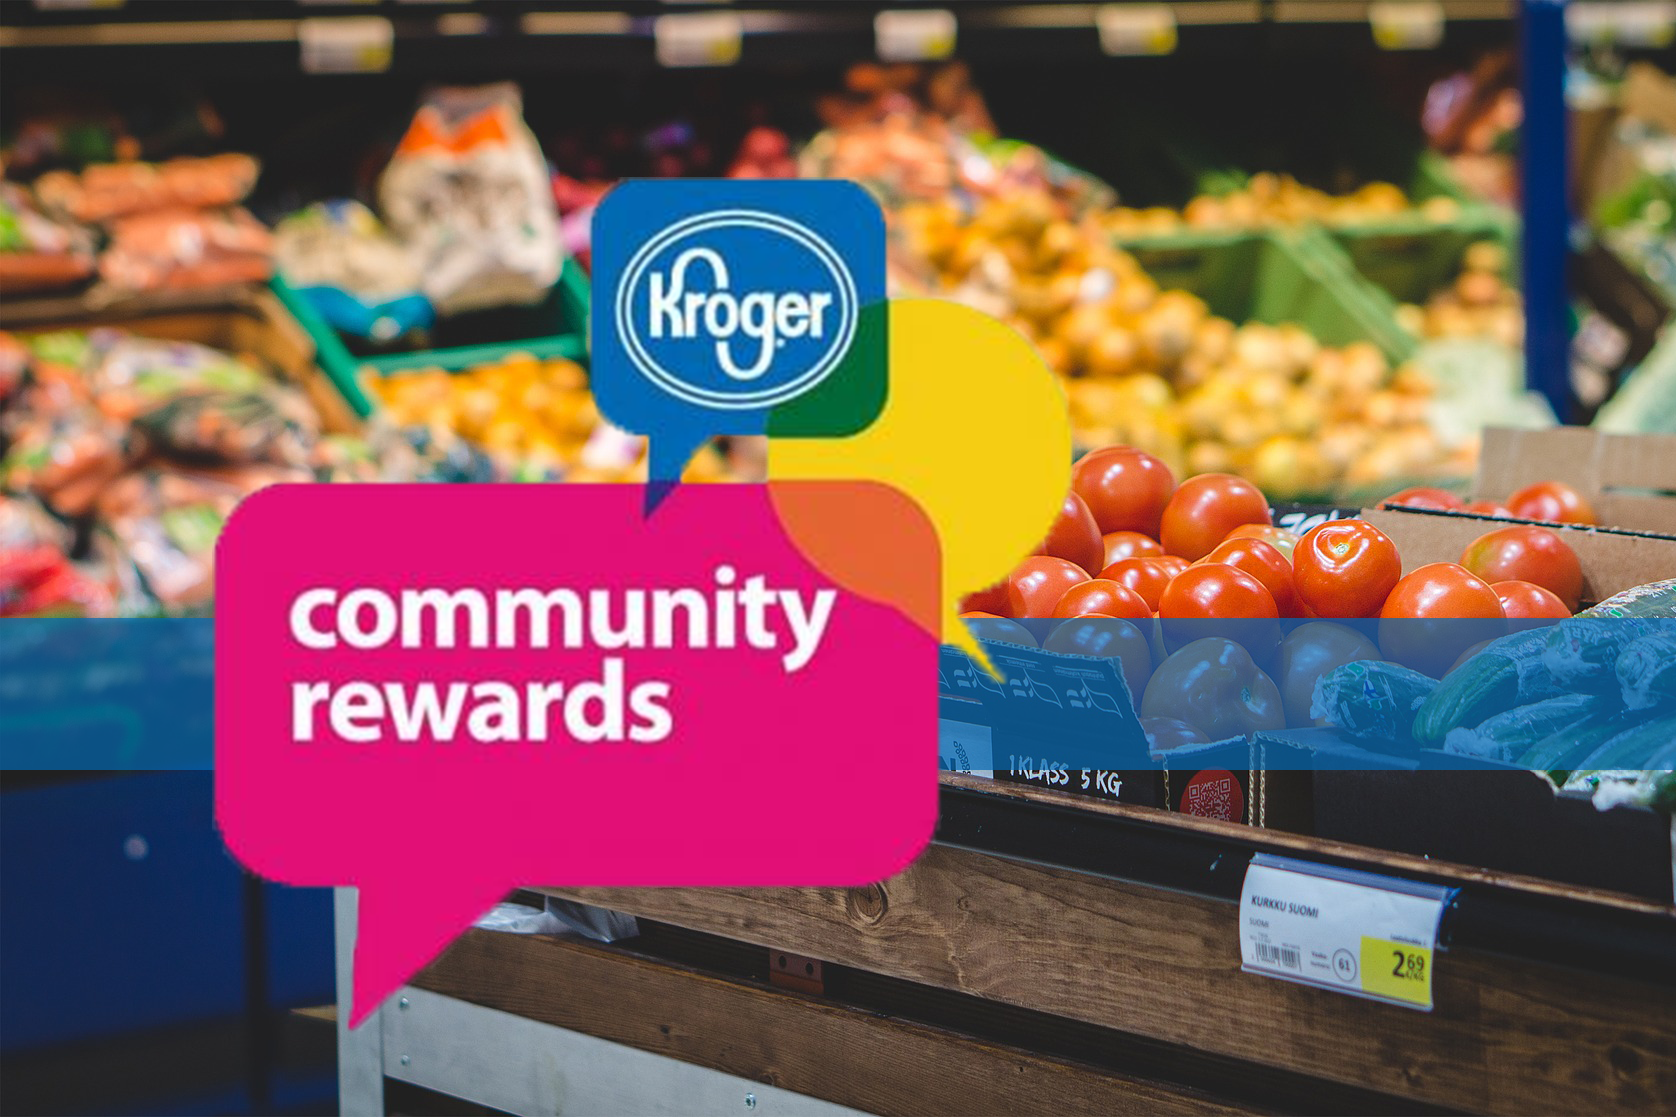 KROGER COMMUNITY REWARDS - Walden benefits greatly from the community rewards distributed by Kroger. In order to receive the maximum benefit, those in the Walden community who frequently shop at Kroger should register their Kroger Plus Card so that Walden School Corp. is the designated non-profit.Click the button below to sign in or create an account and designate